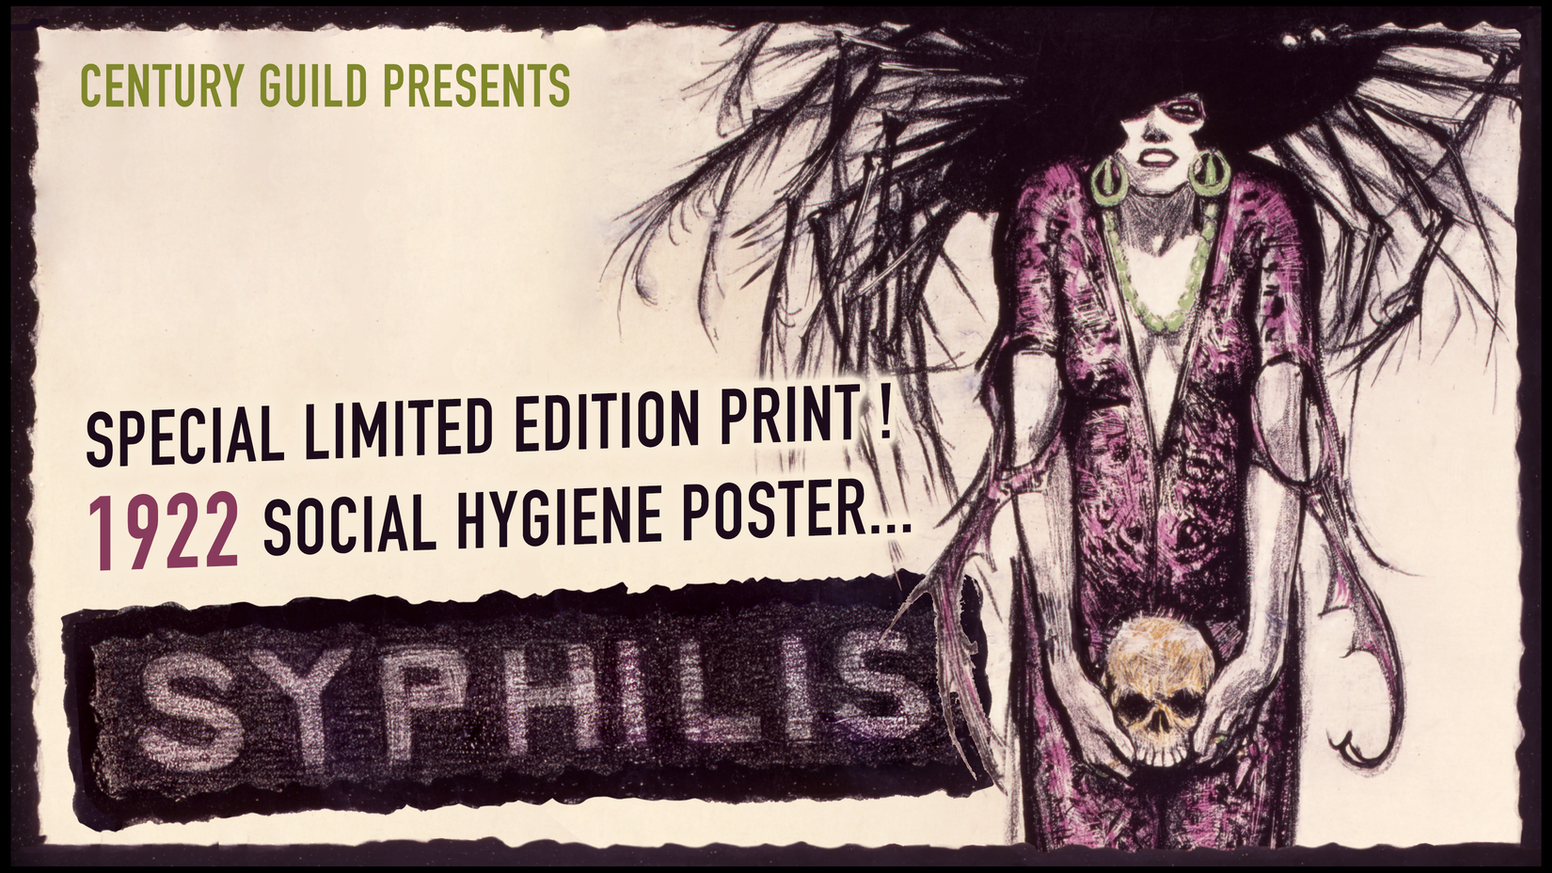 Deluxe edition of 100 fine art prints made directly from a rare original poster created in 1922.